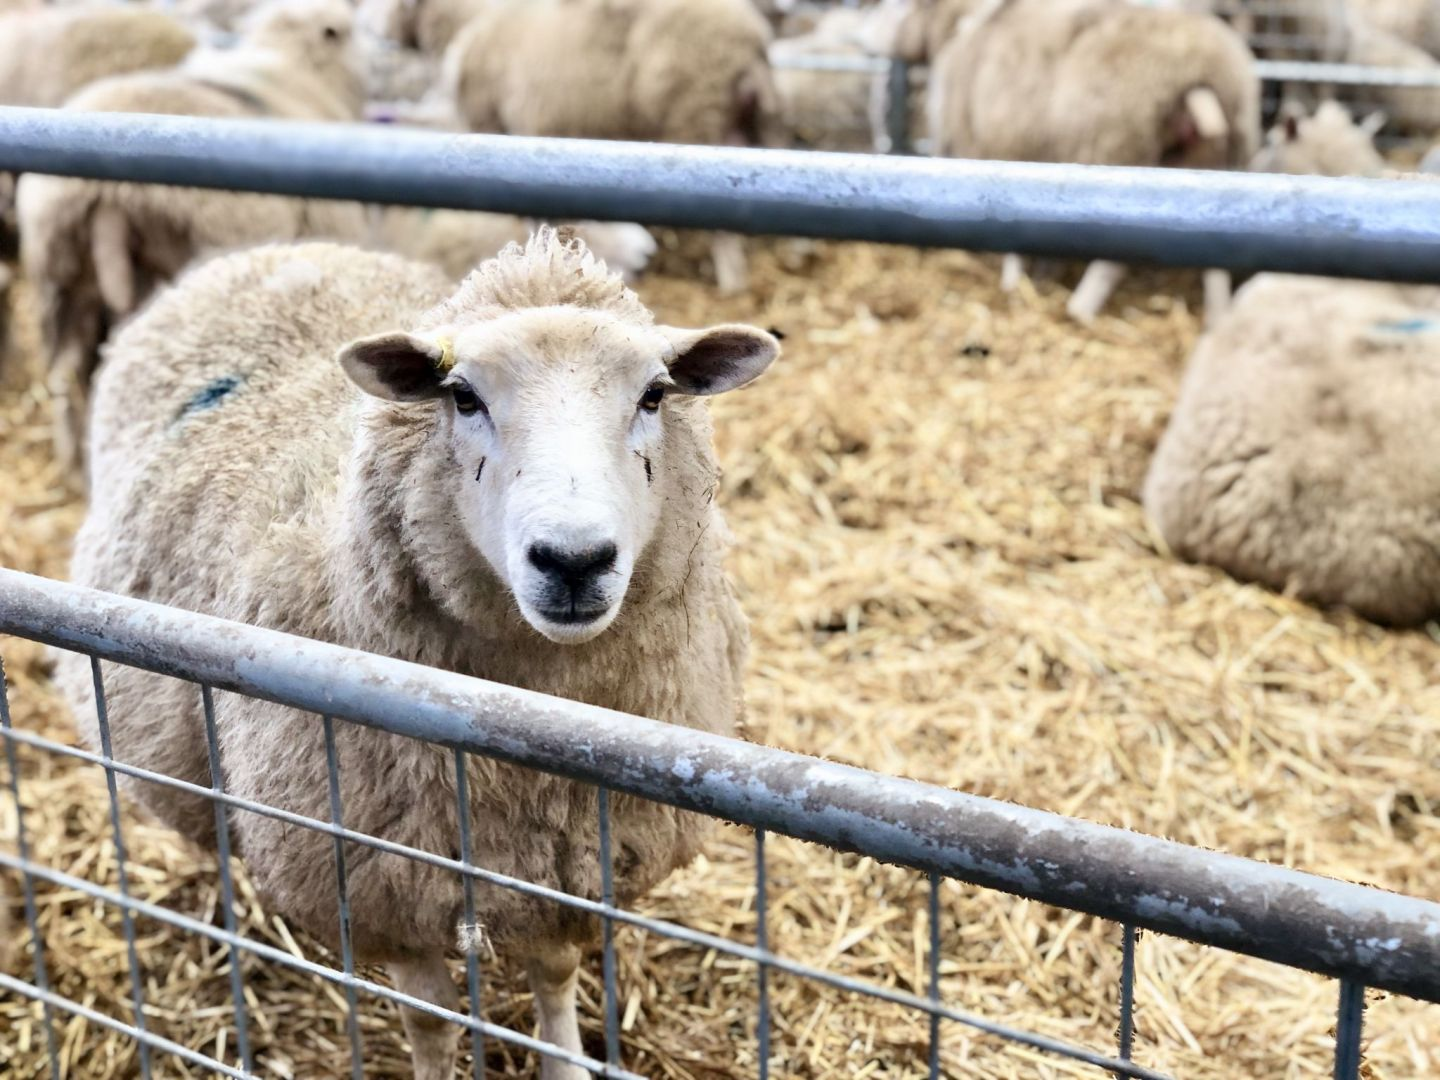 Pregnant ewe at Cotswold Farm Park, Cotswold Baby Co